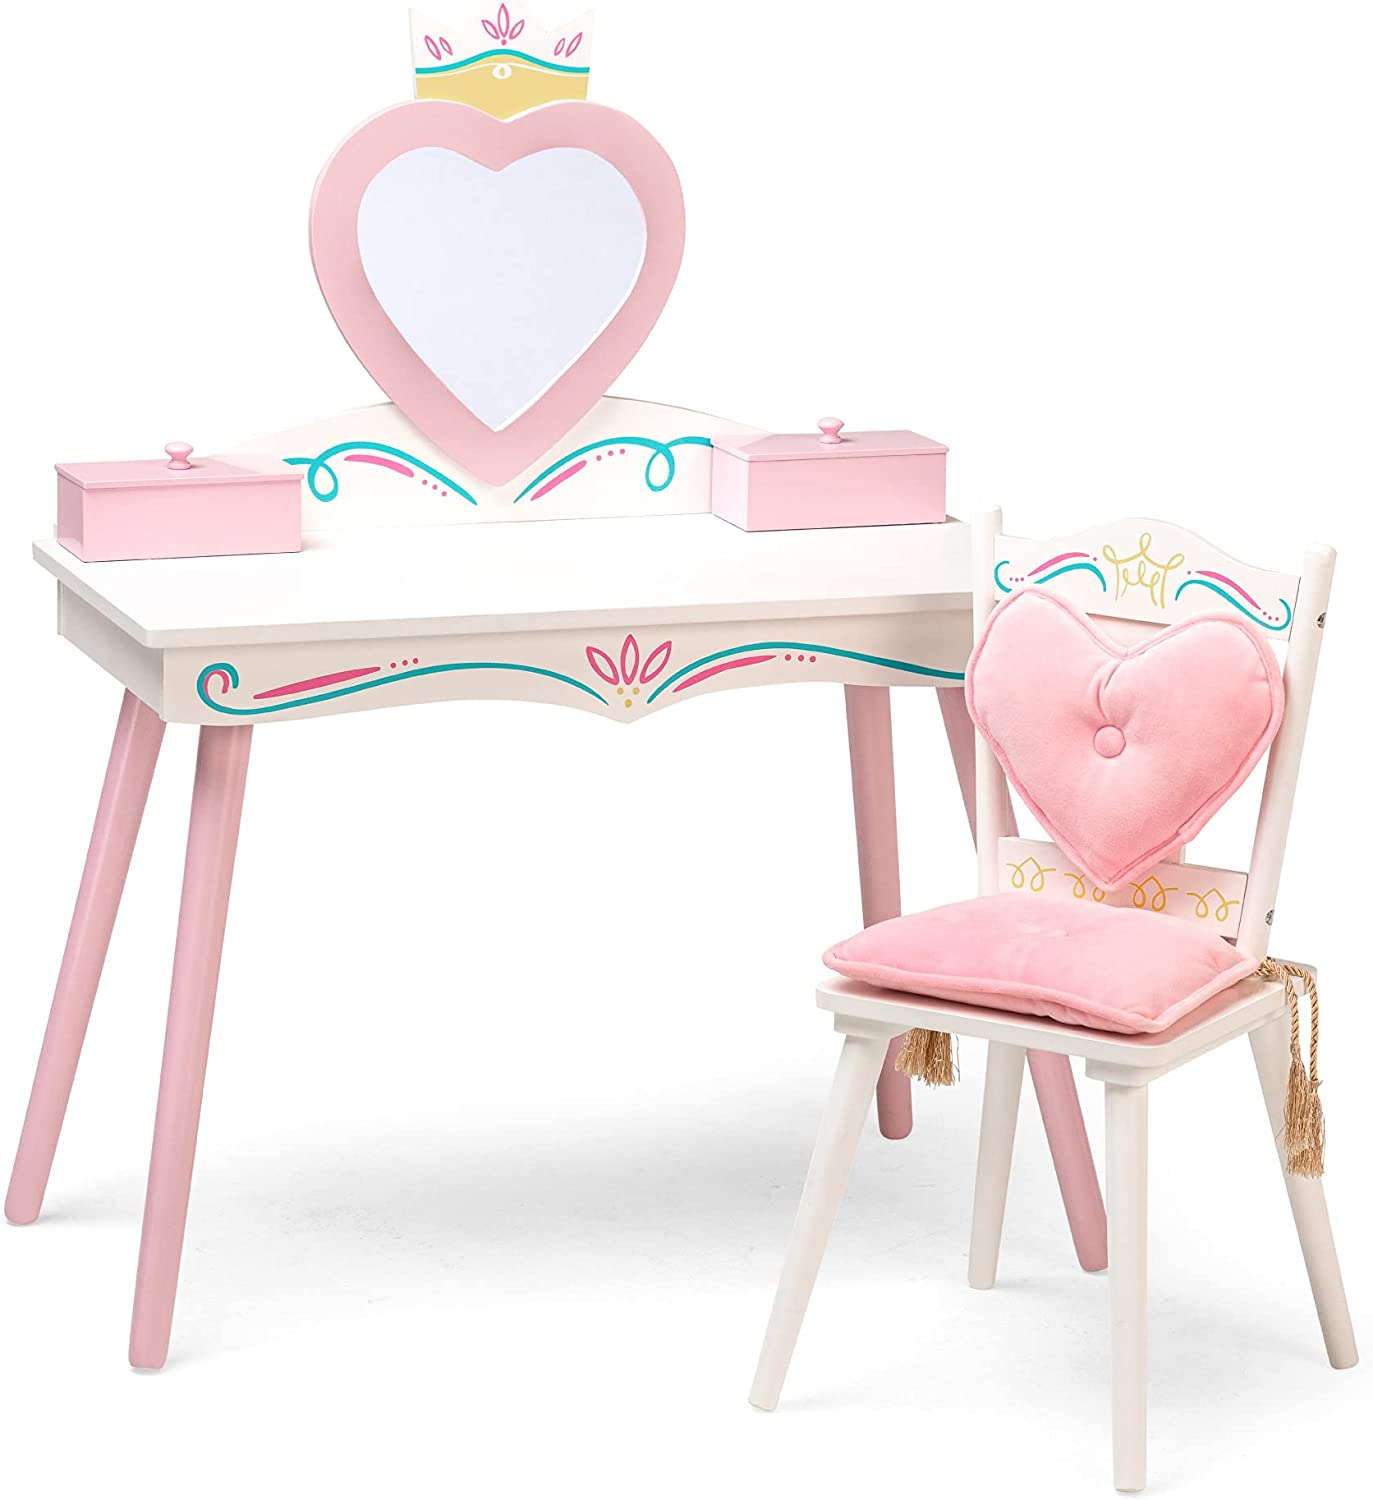 Wildkin Kids Princess Wooden Vanity and Van Set Be super welcome Chair Shipping included for Girls